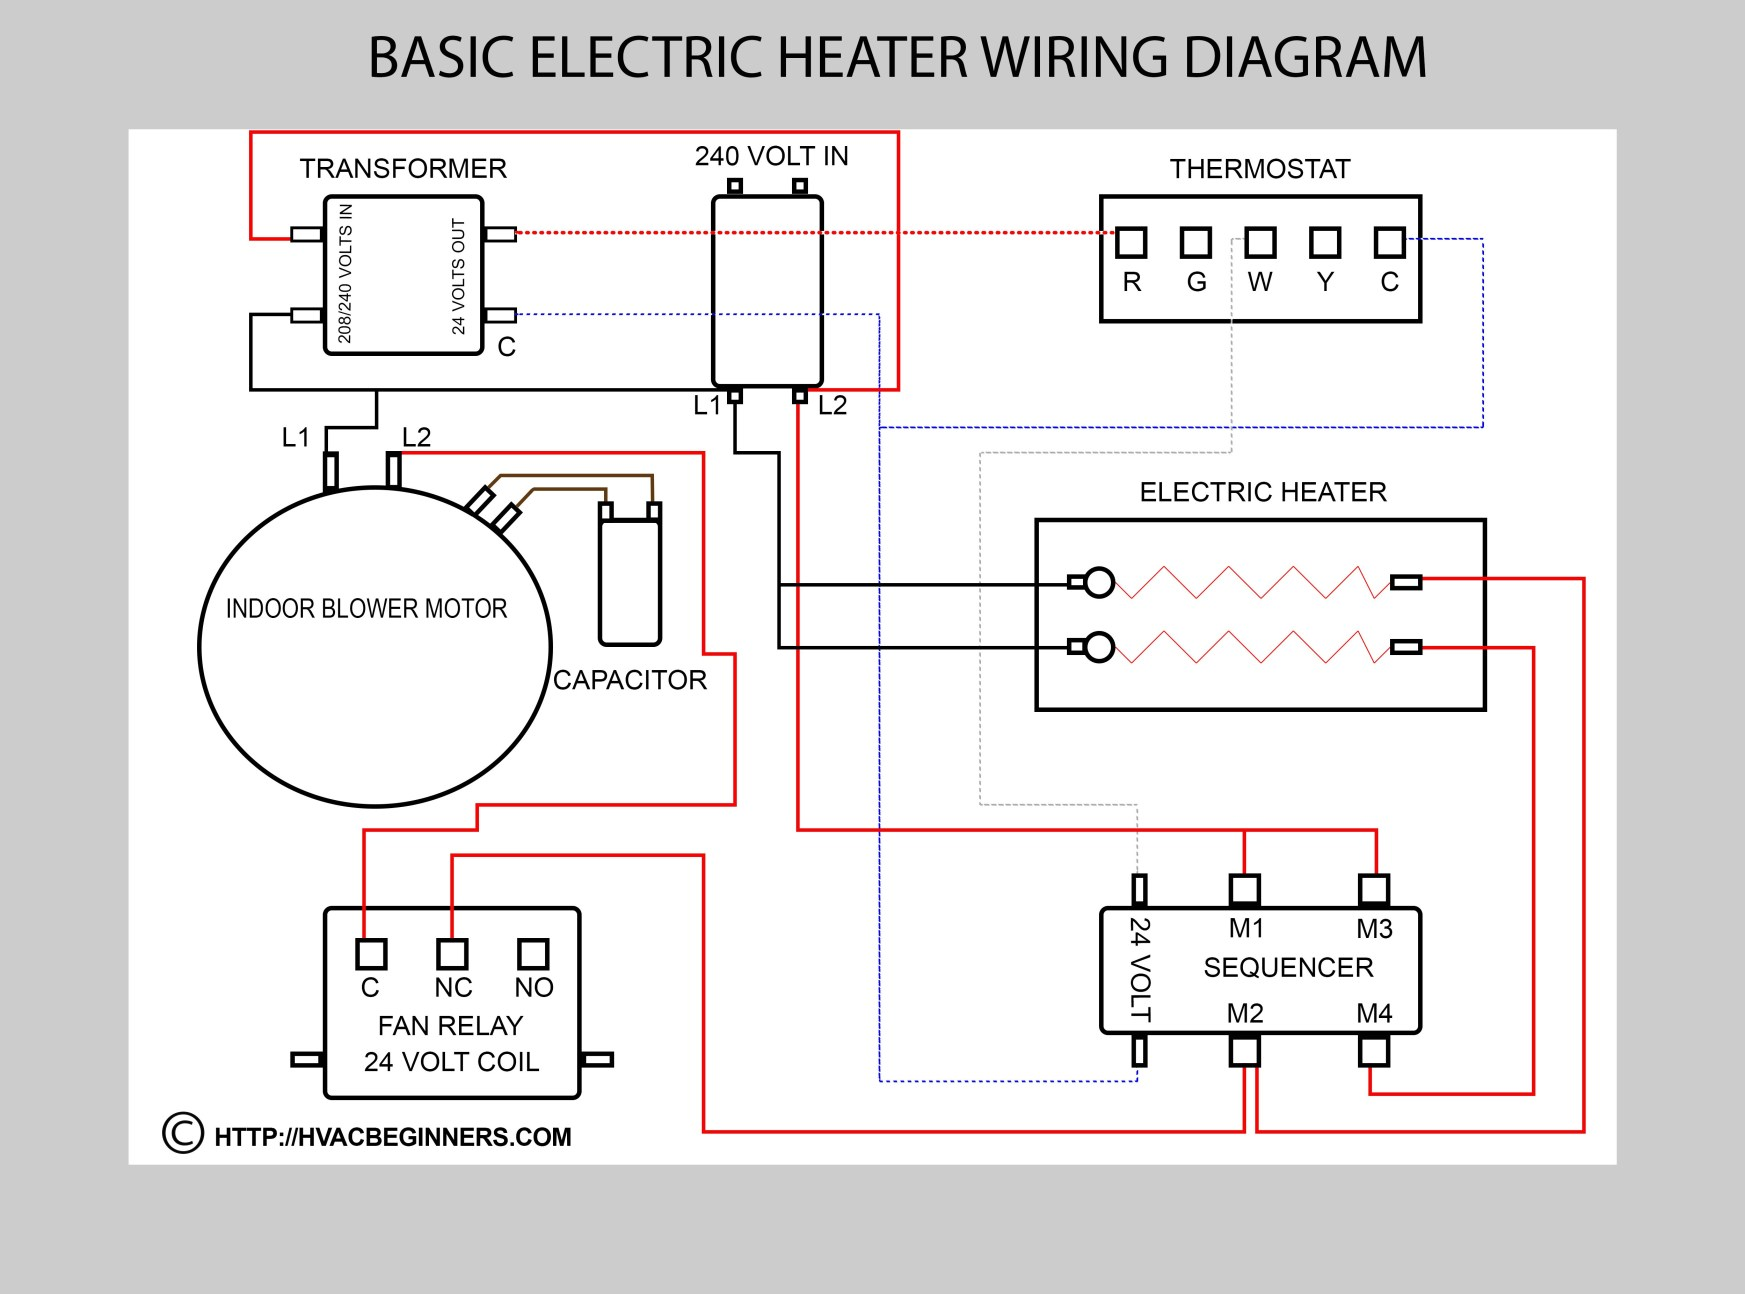 central air blower diagram all about repair and wiring collections central air blower diagram central ac thermostat wiring diagram wiring diagram electricheaterwired central ac thermostat